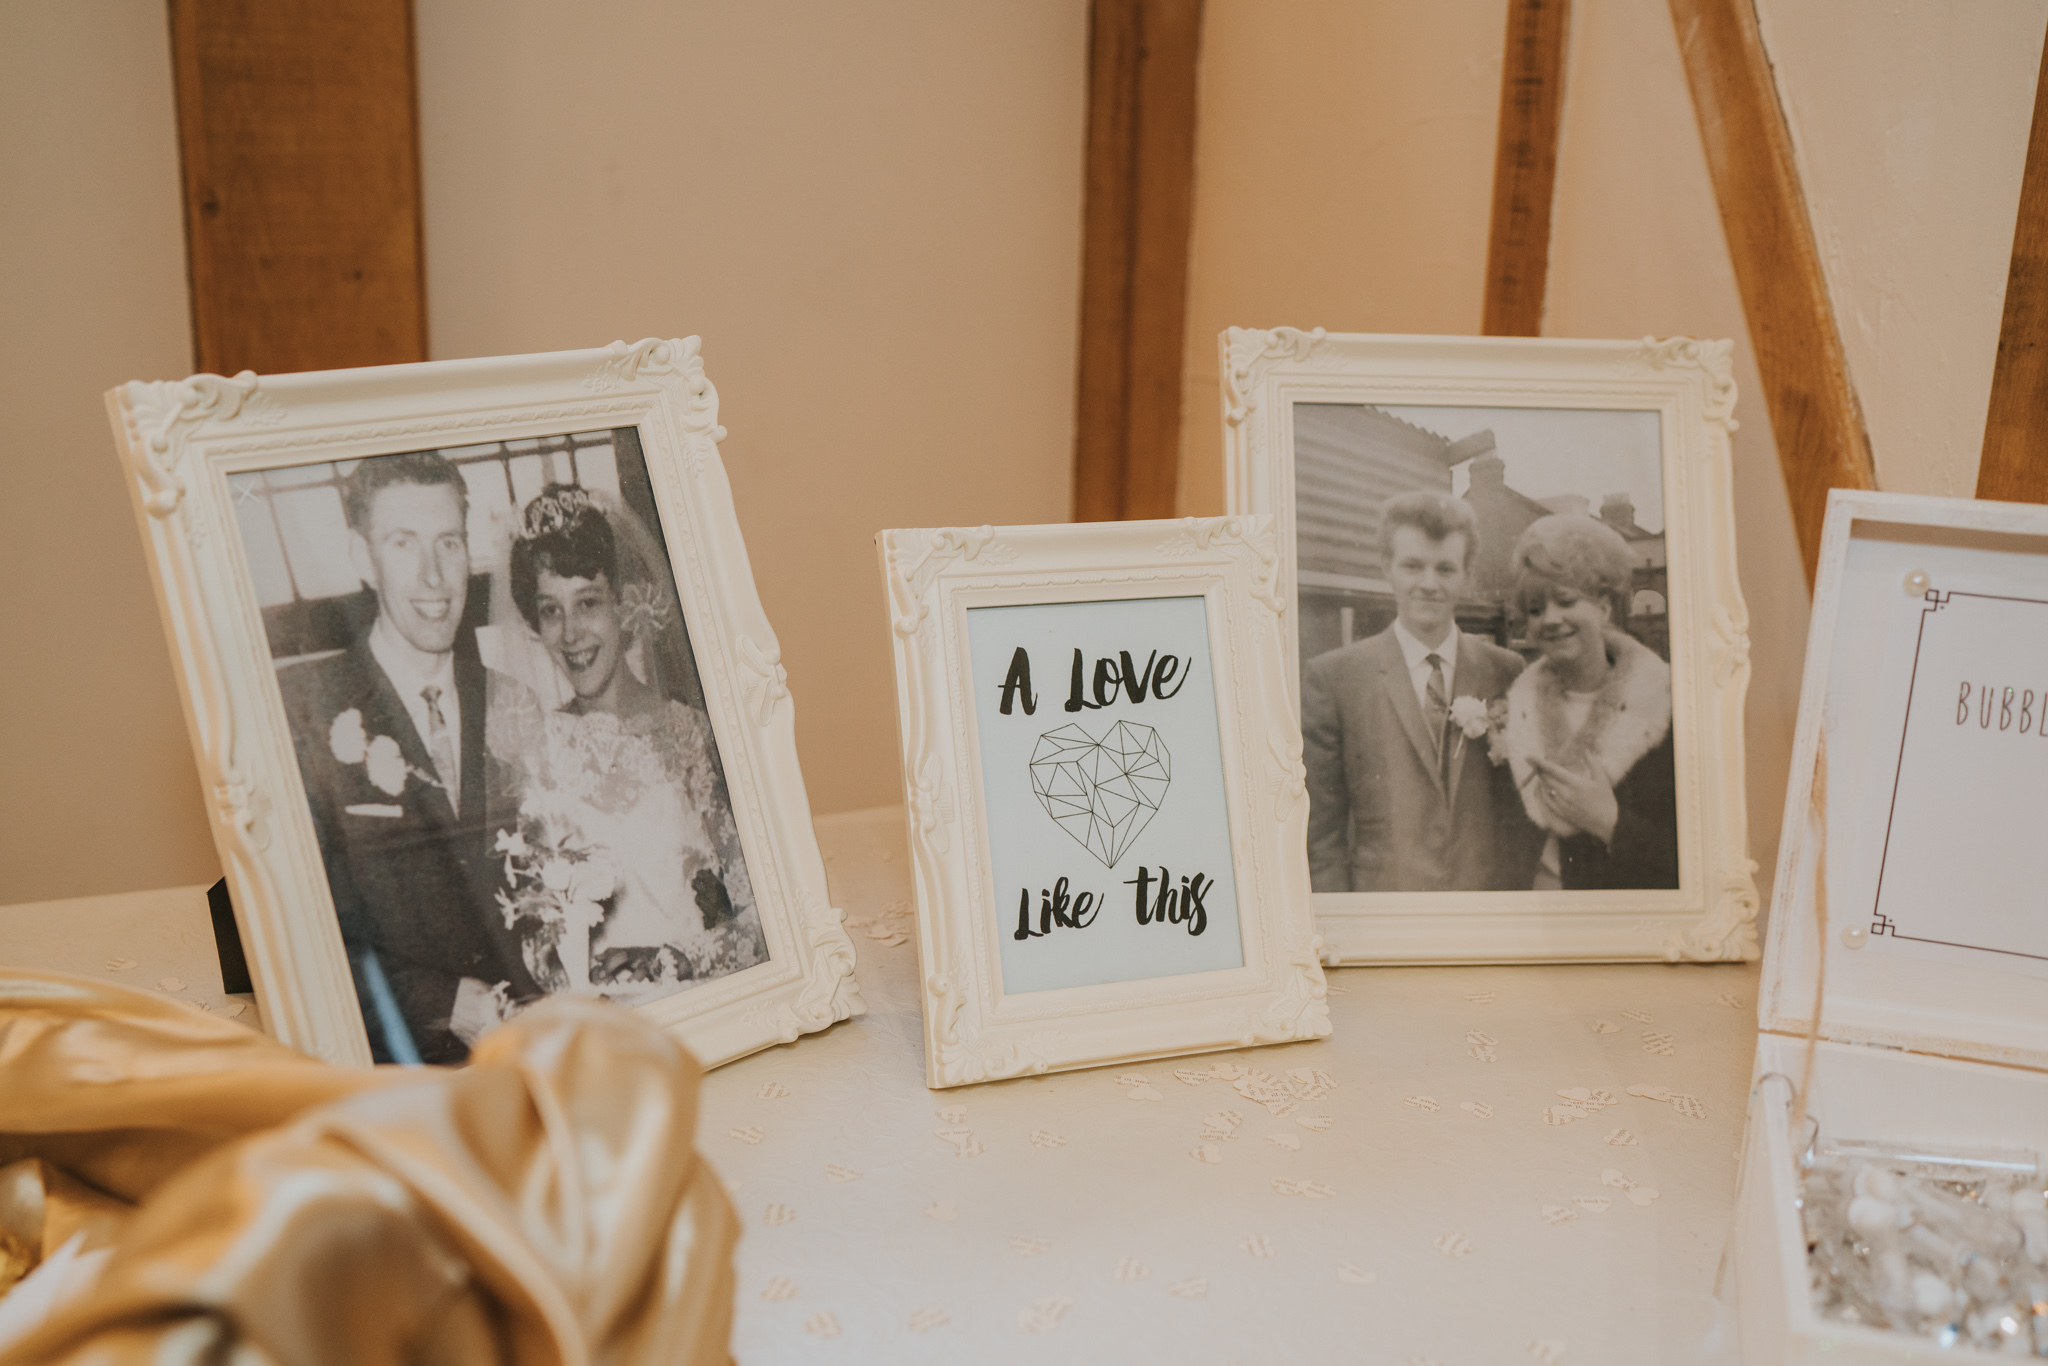 rhia-james-rustic-crabbs-barn-vintage-50s-retro-wedding-grace-elizabeth-colchester-essex-alternative-relaxed-wedding-family-photography-devon-suffolk-norfolk-essex (55 of 138).jpg